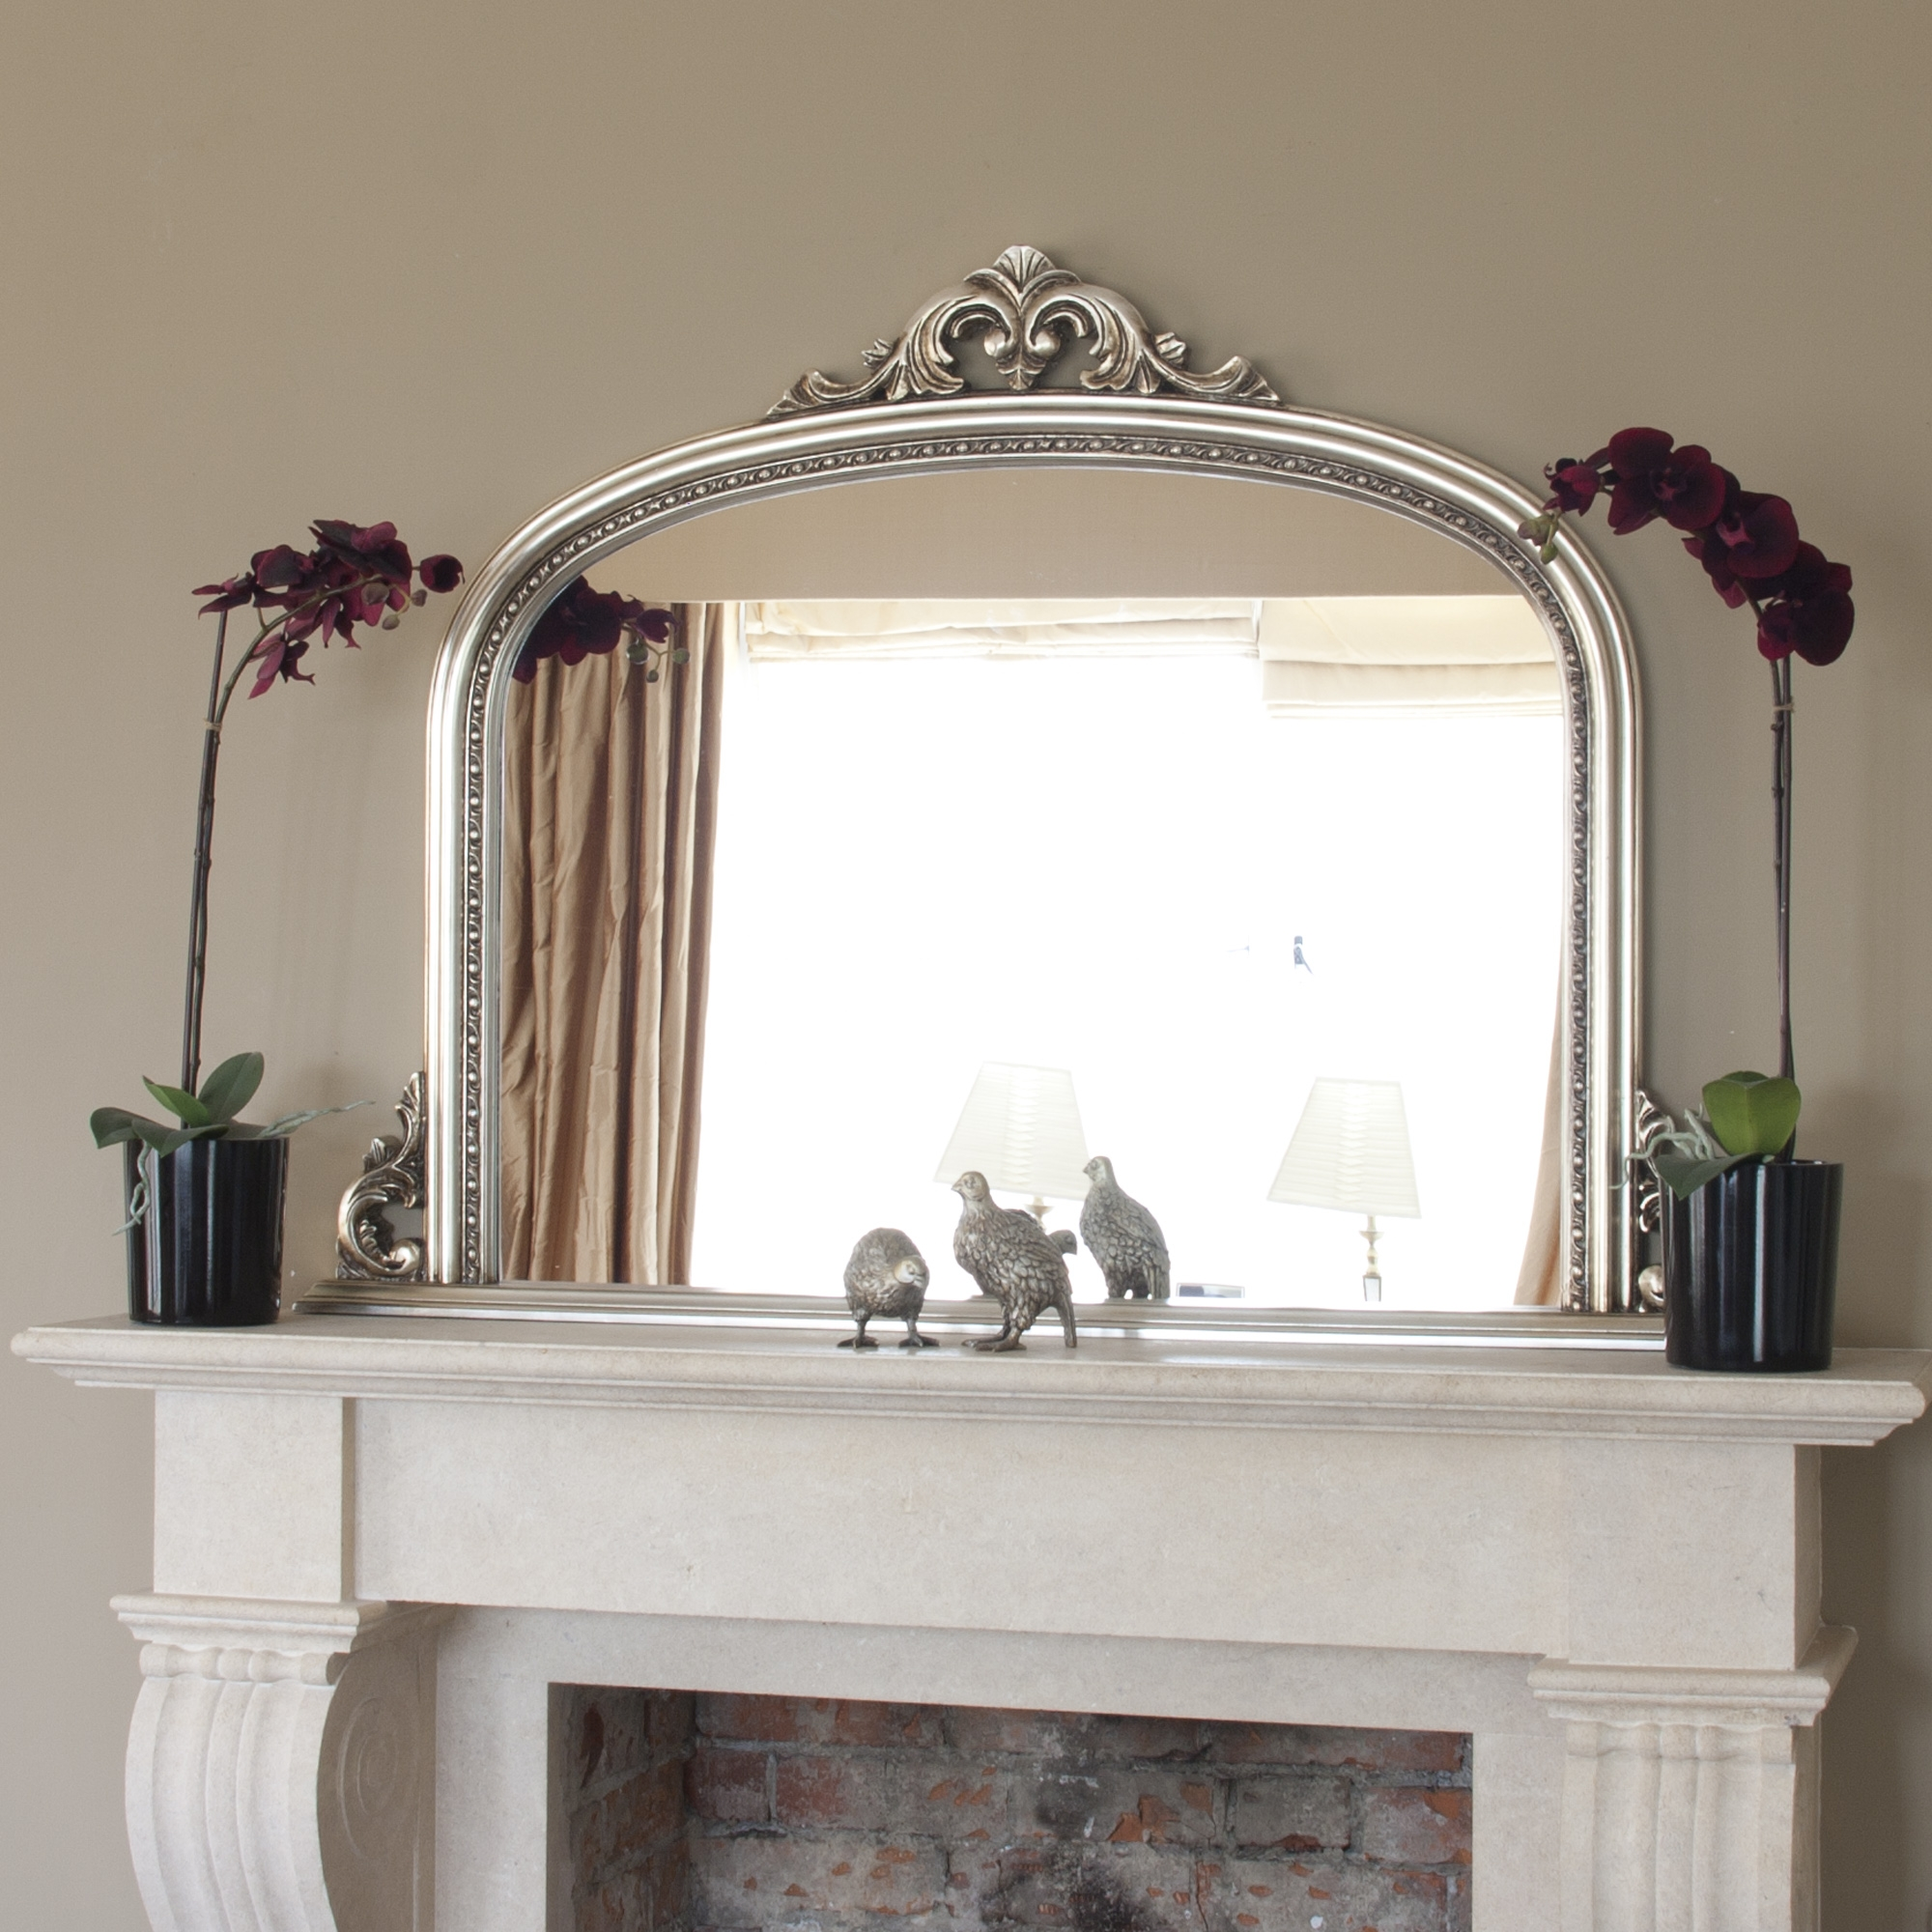 This Is A Slightly Different Design From The More Plain Overmantel Within Overmantel Mirror (Image 12 of 15)